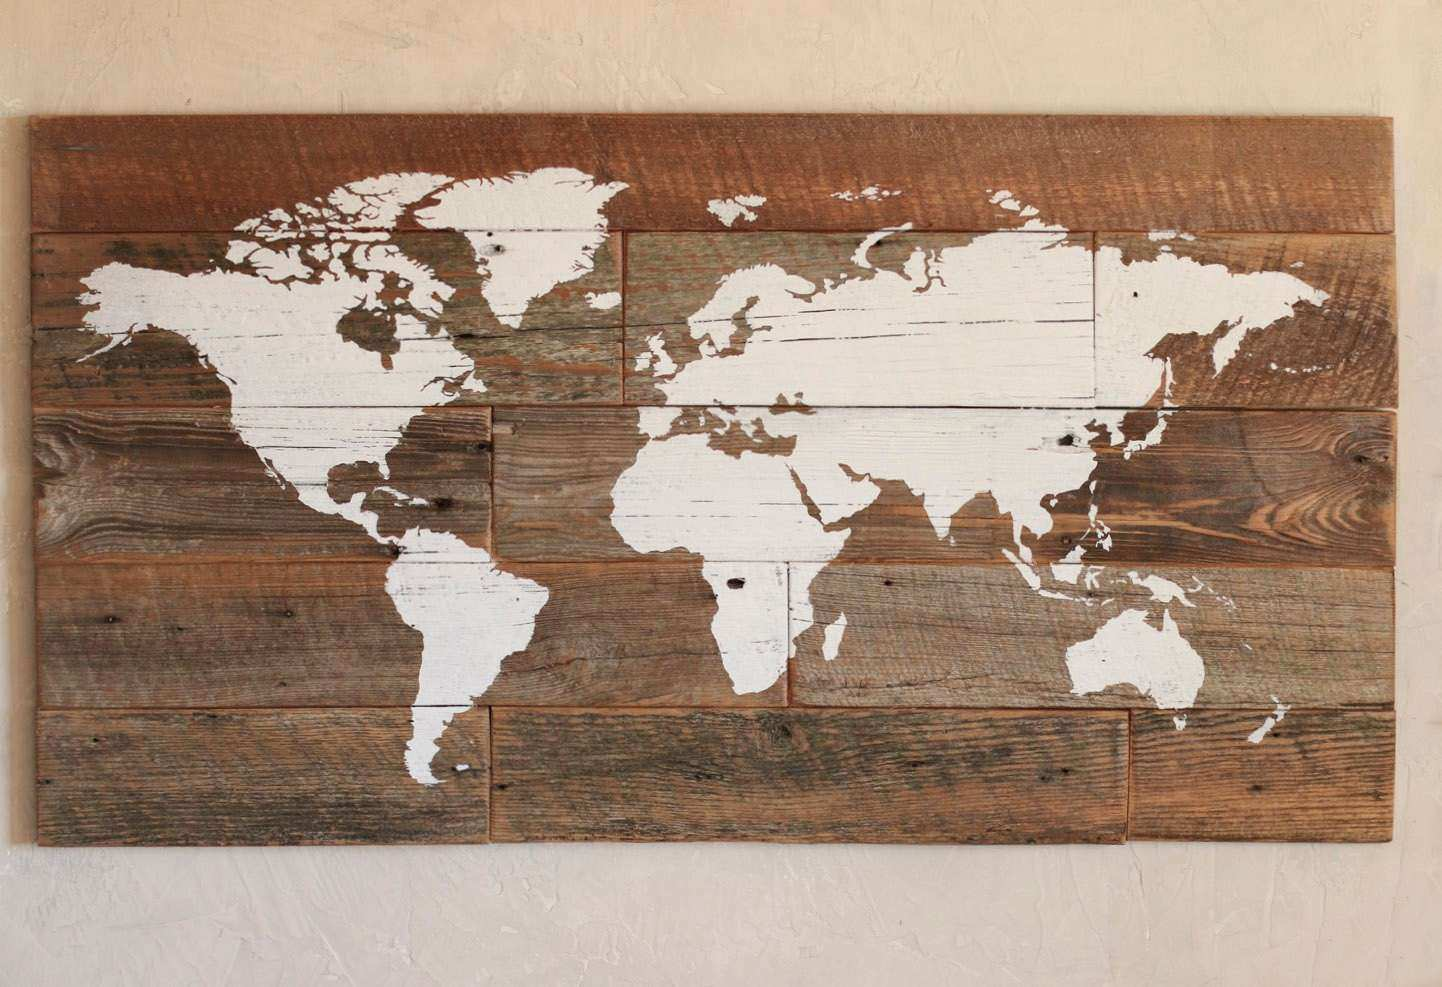 Wood map of the world World map wall art Push pins to mark